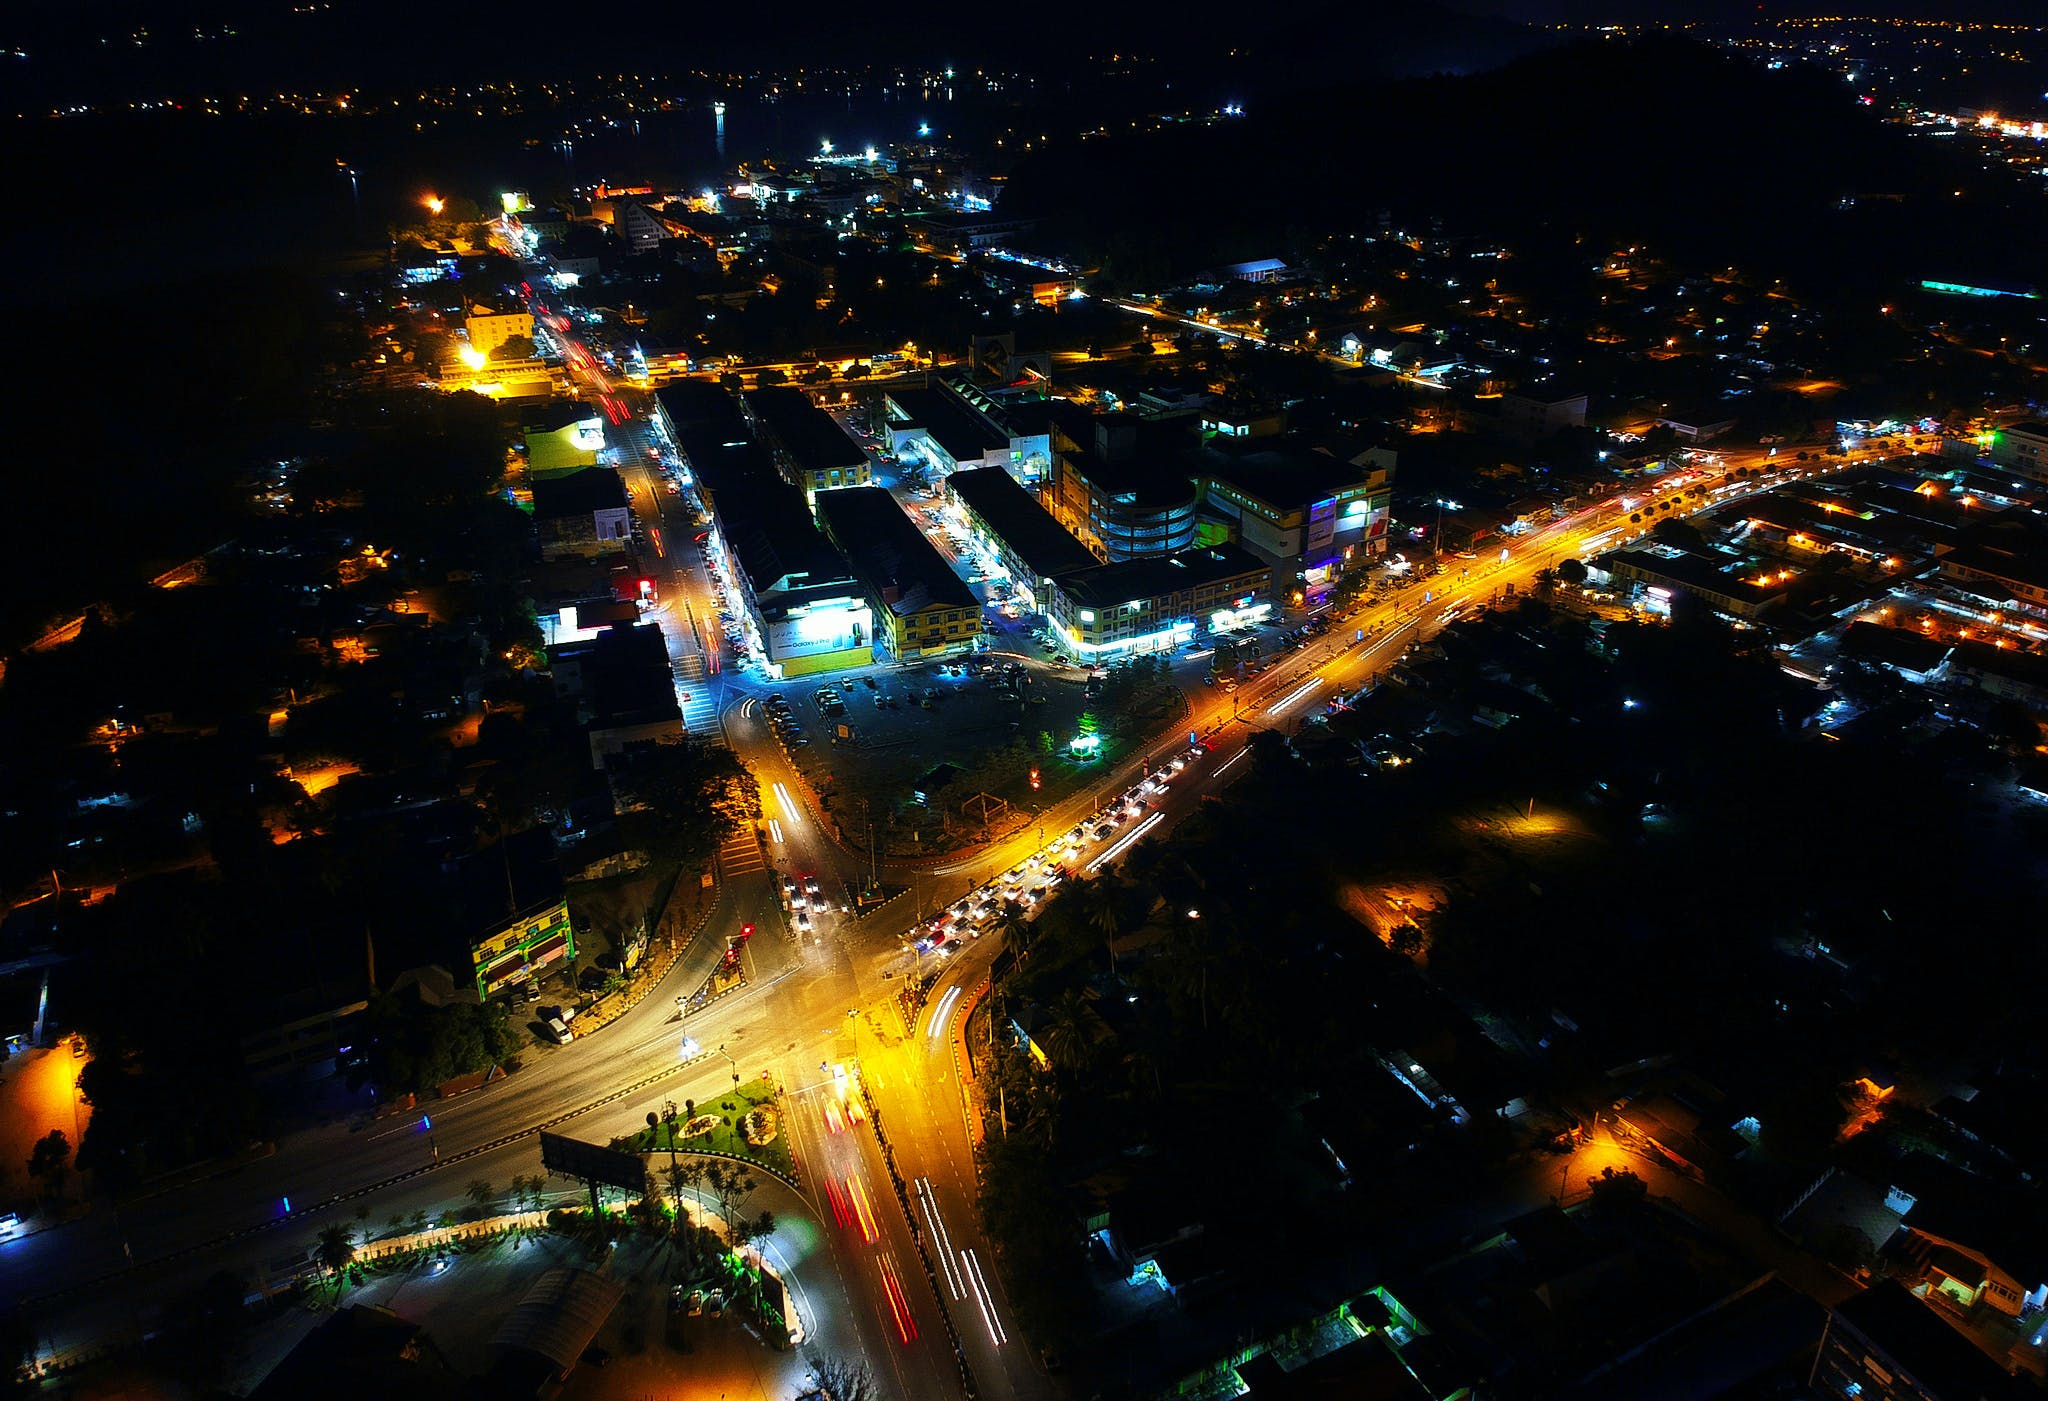 Aerial View of City during Nighttime